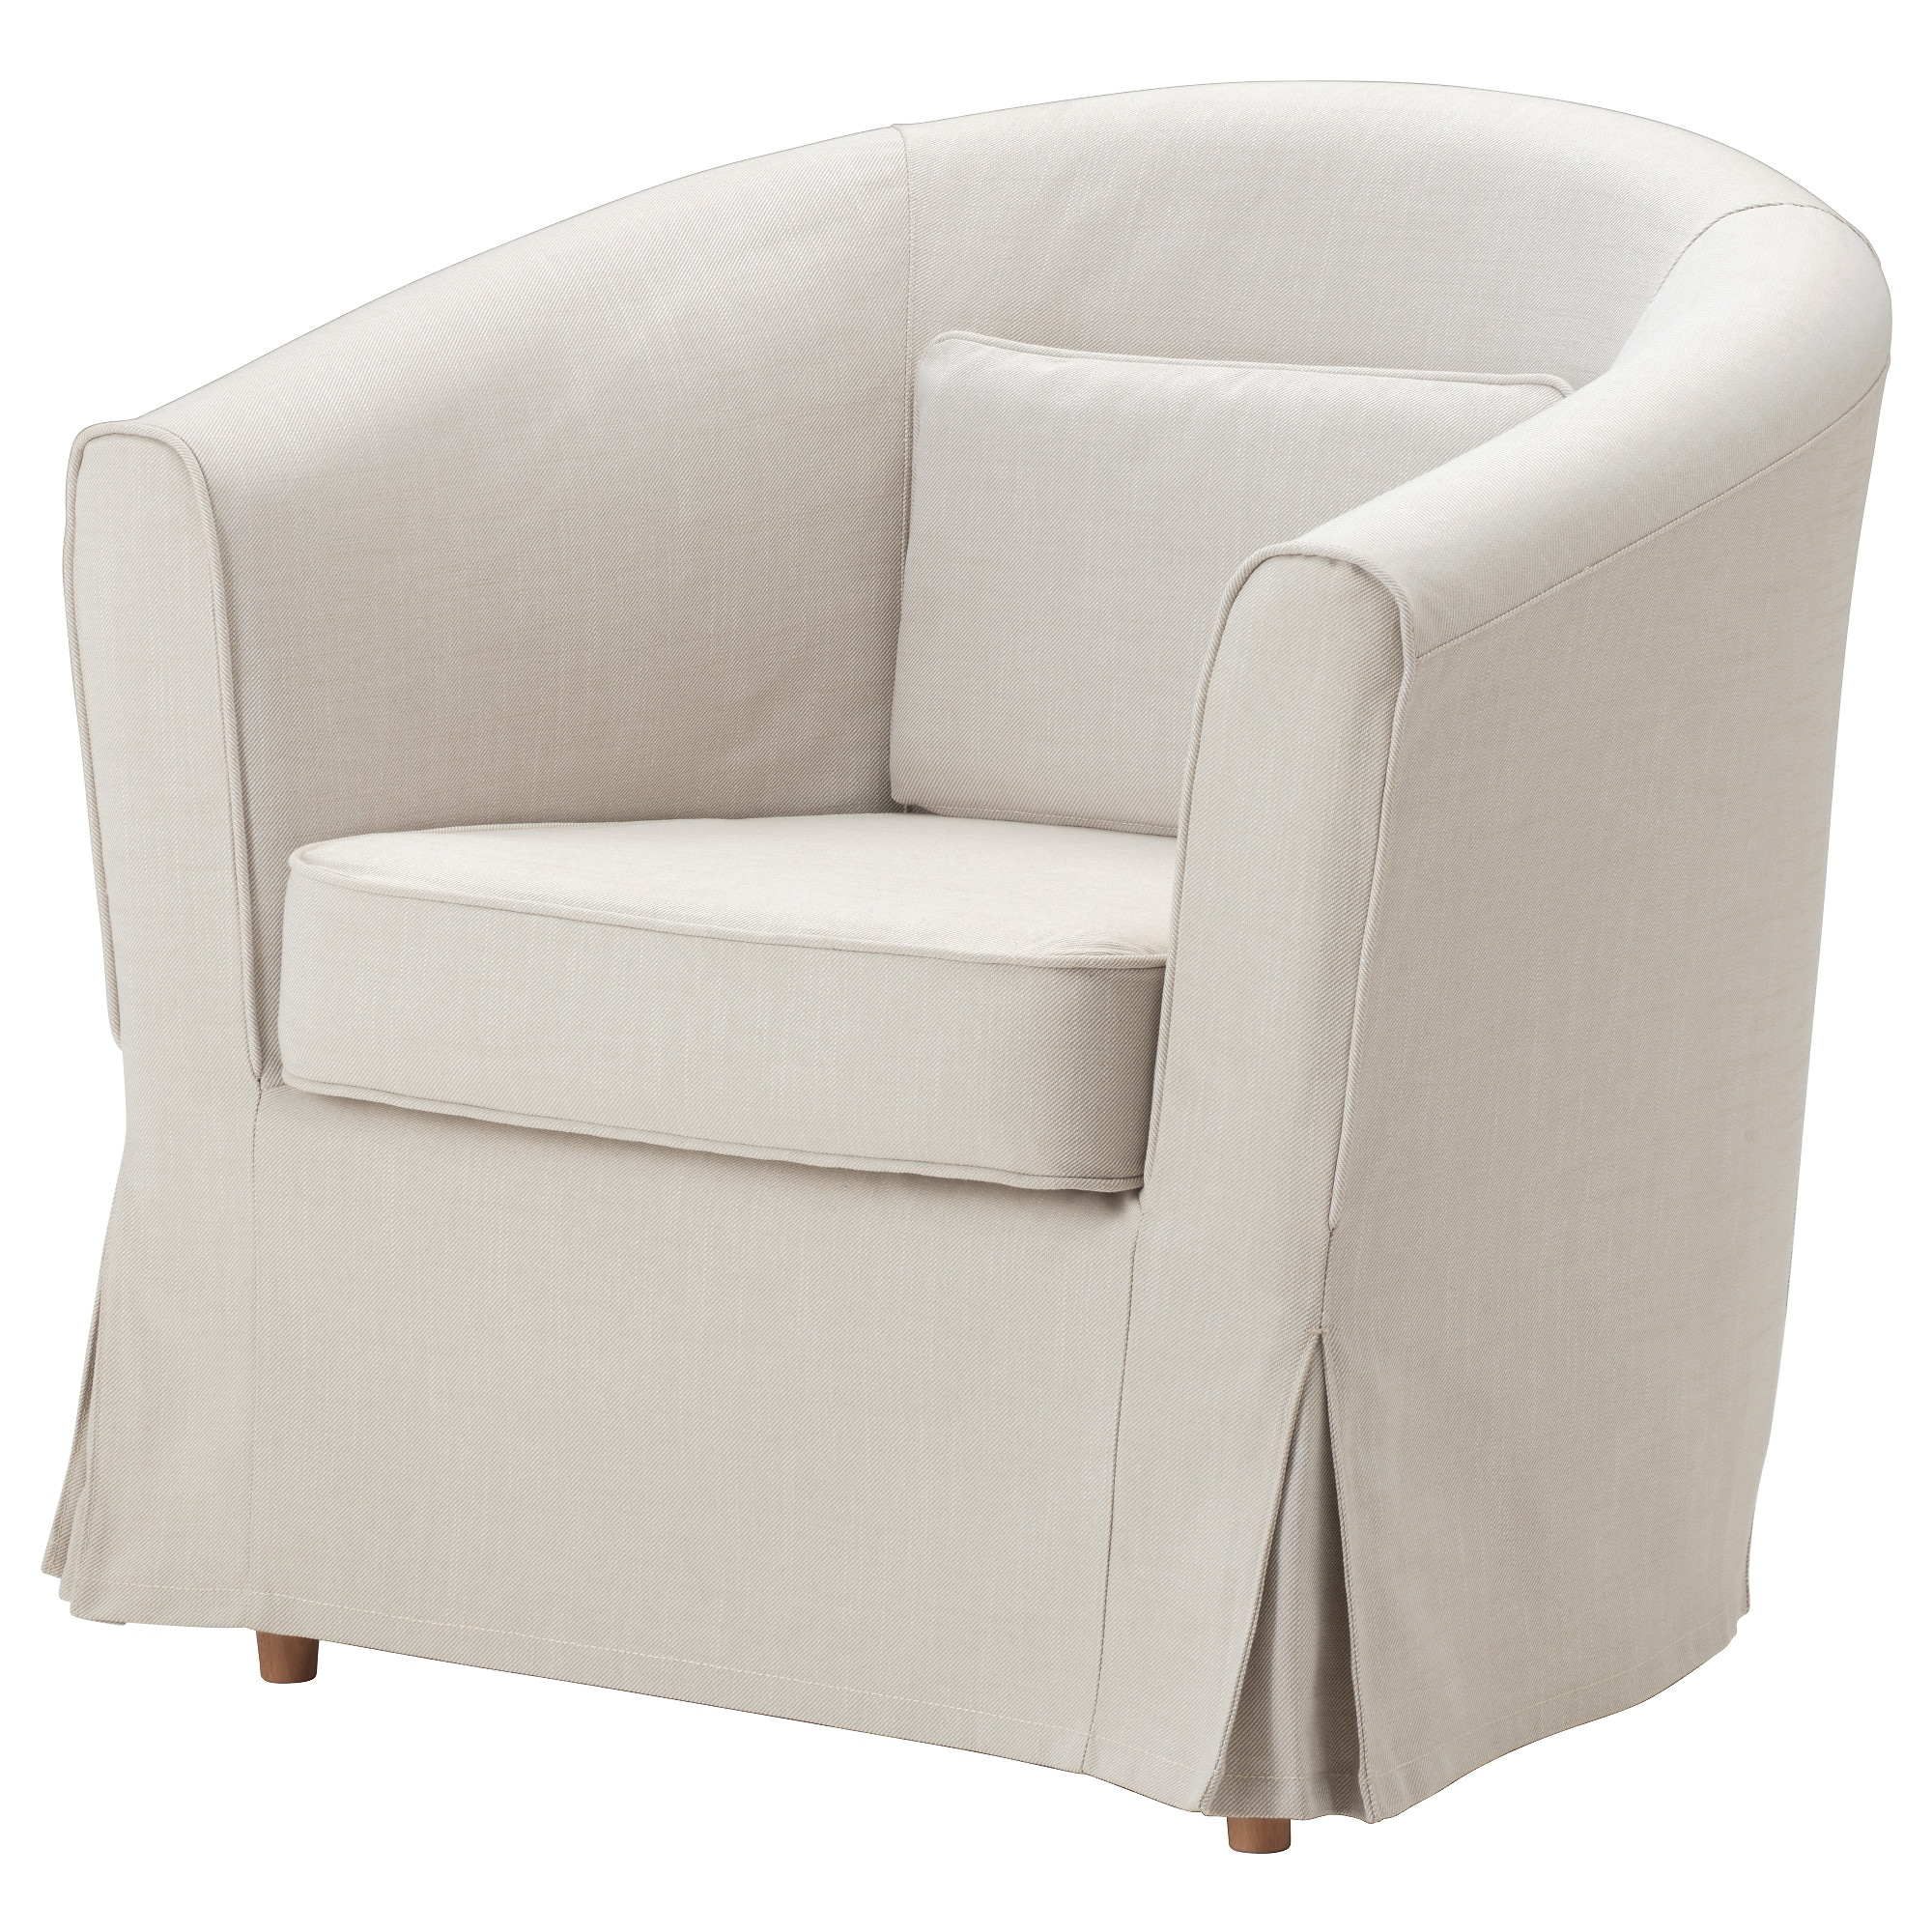 tullsta chair cover - blekinge white - ikea